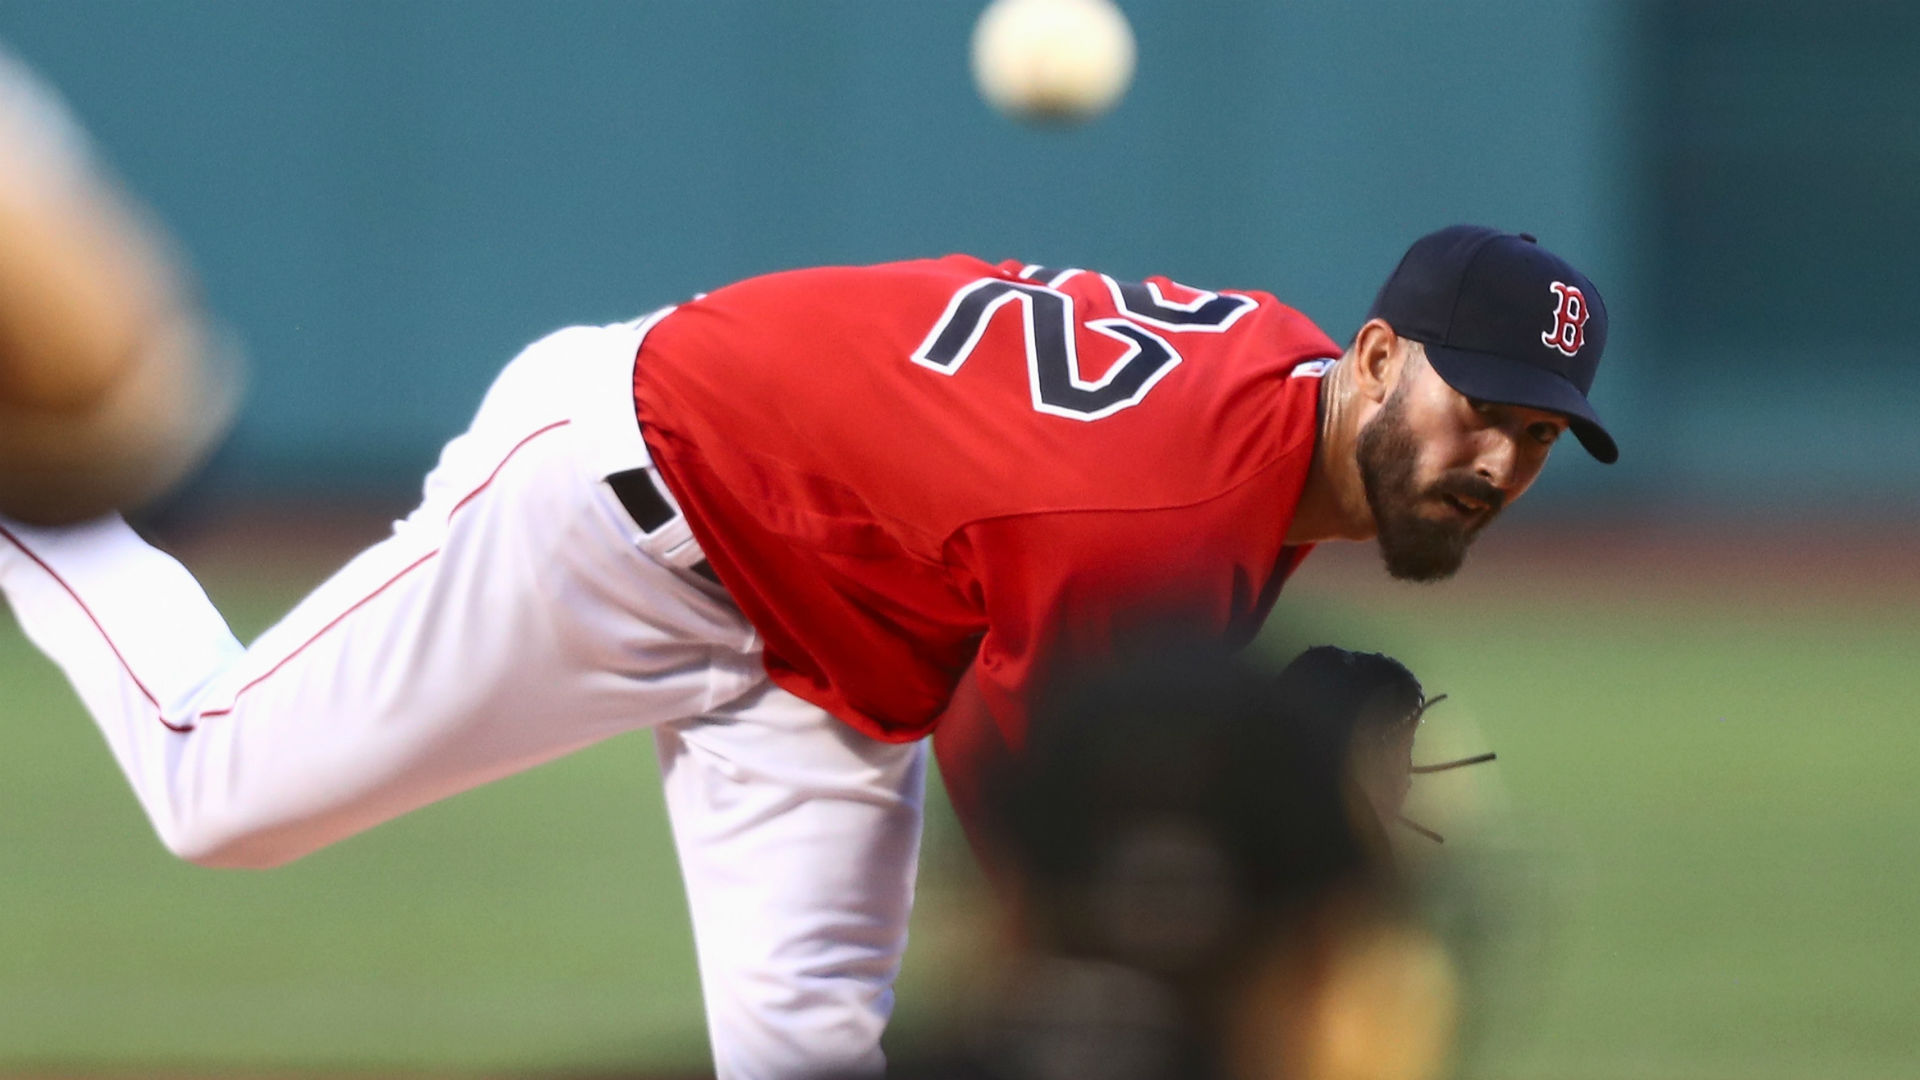 MLB wrap: Rick Porcello throws 1-hitter to leads Red Sox past Yankees